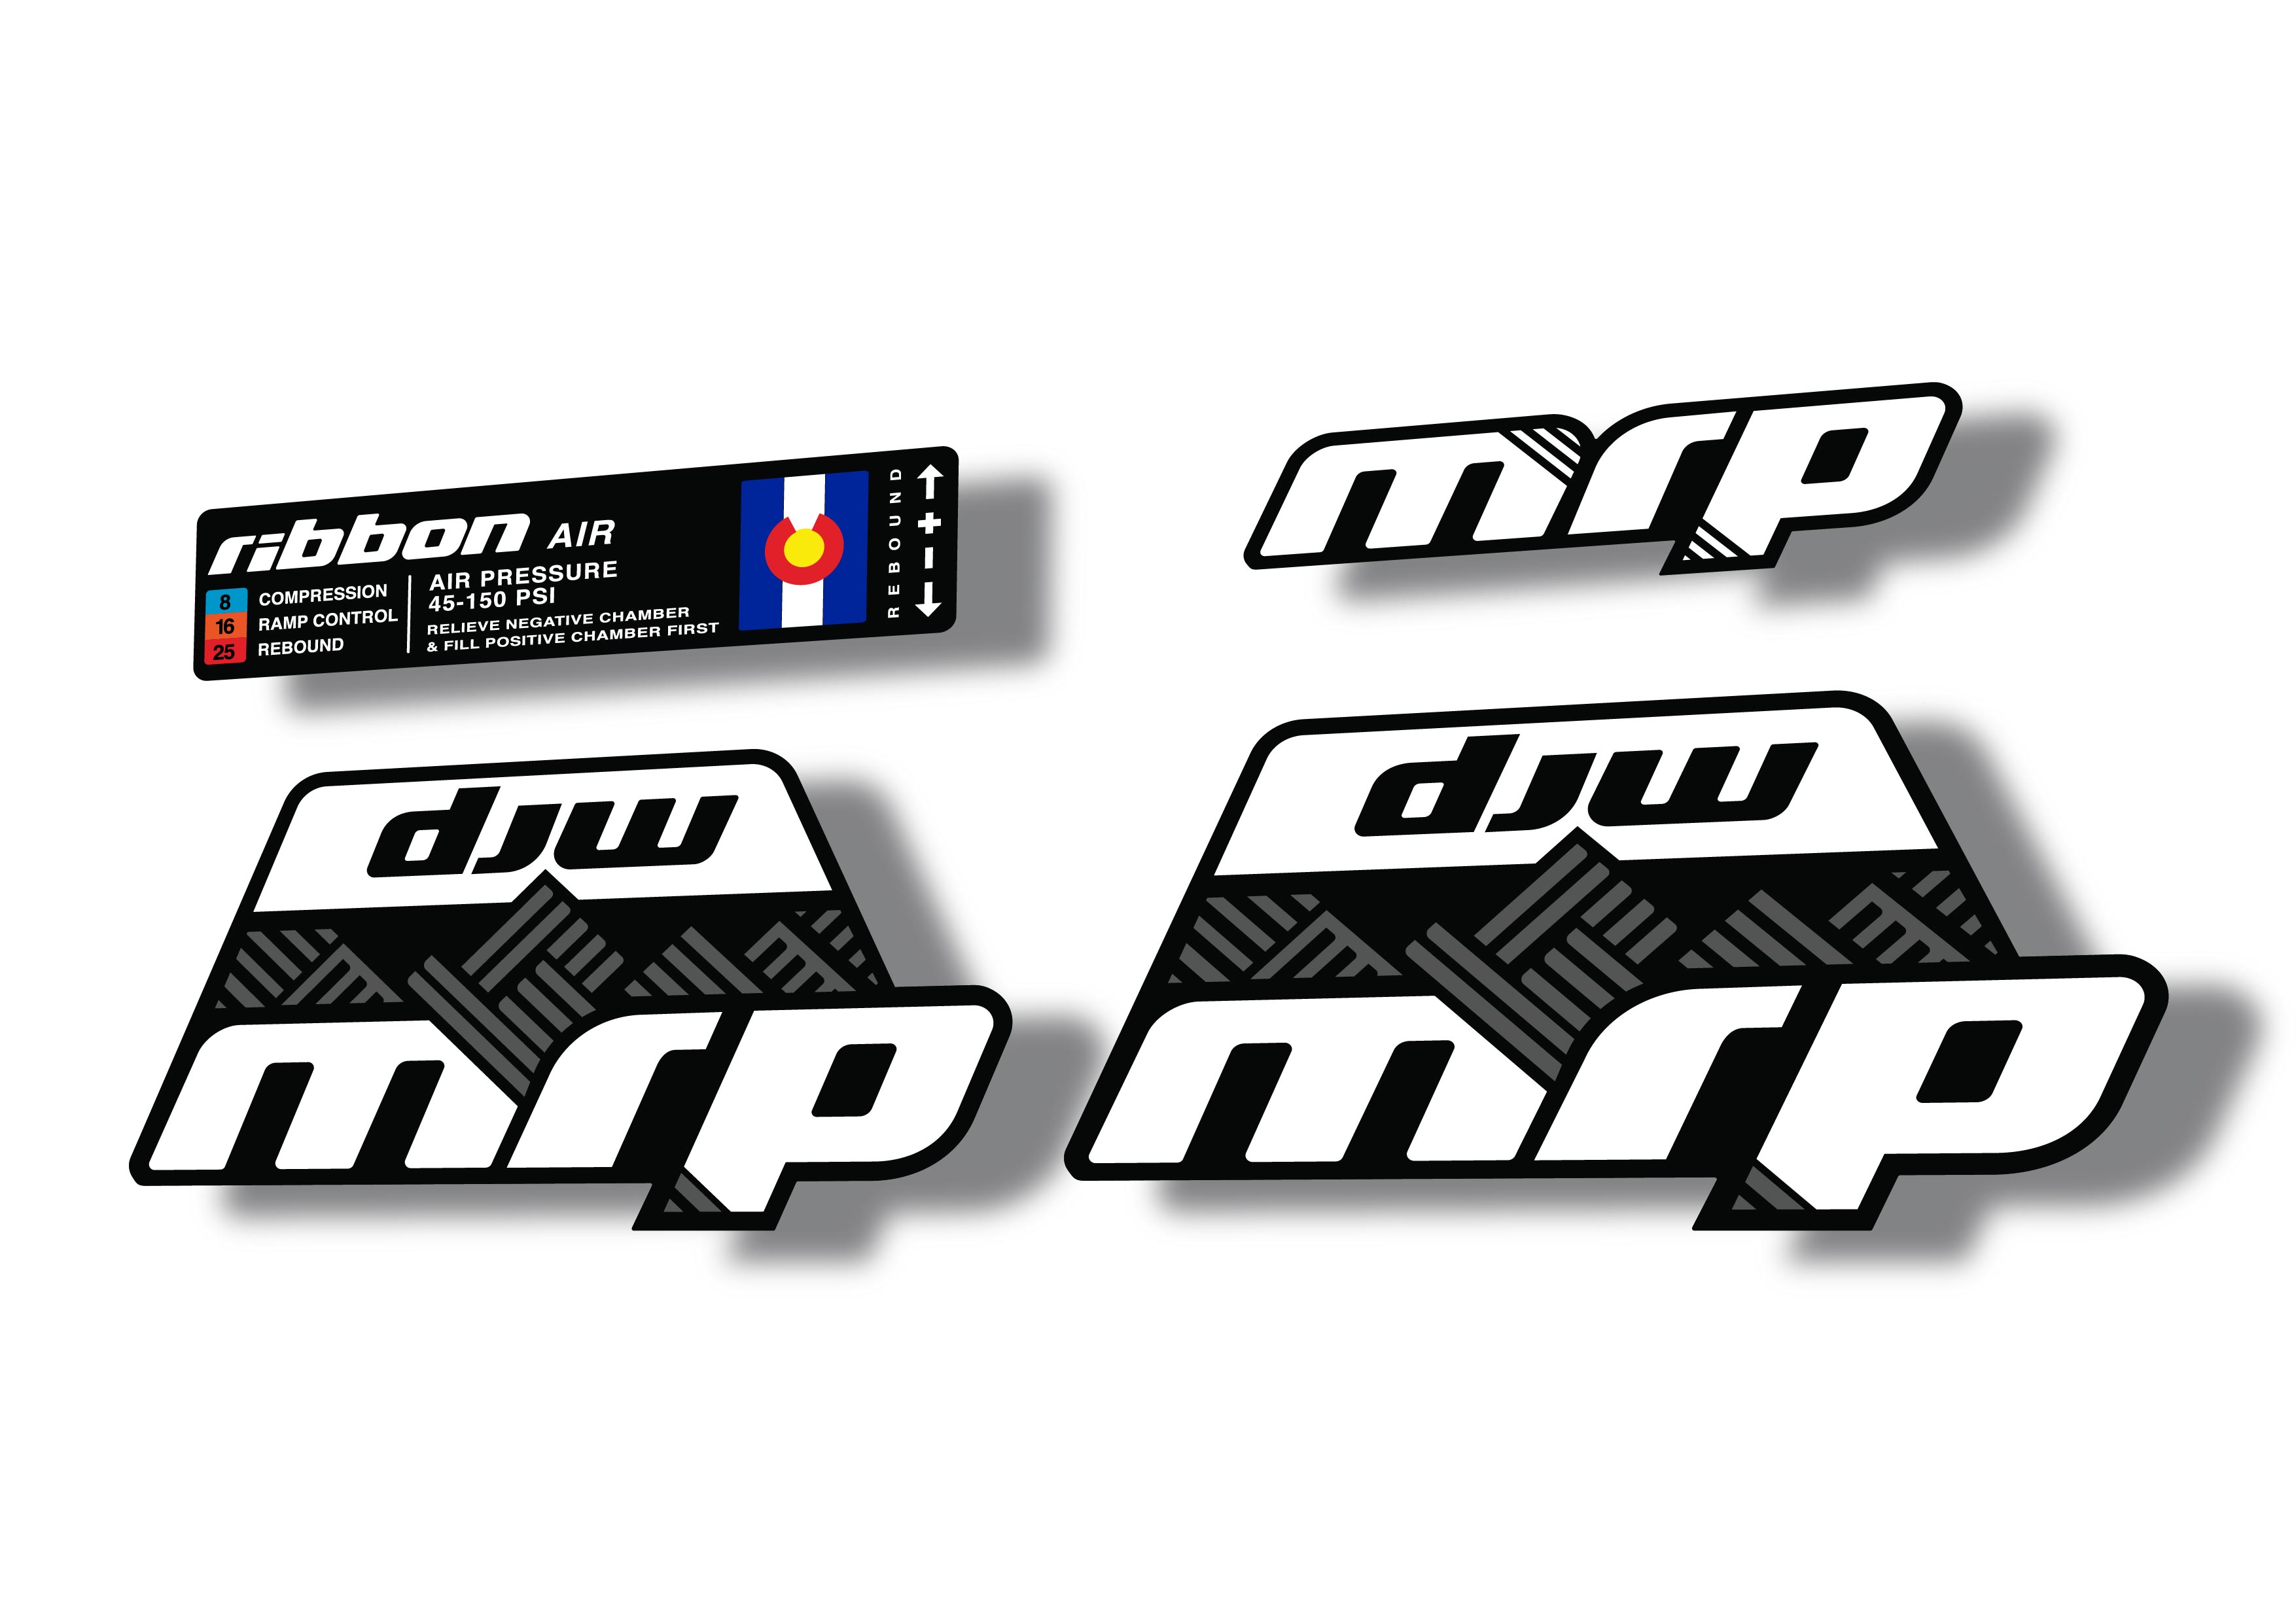 MRP Ribbon Air 2020 Fork Suspension Factory Decal Sticker Adhesive Gray